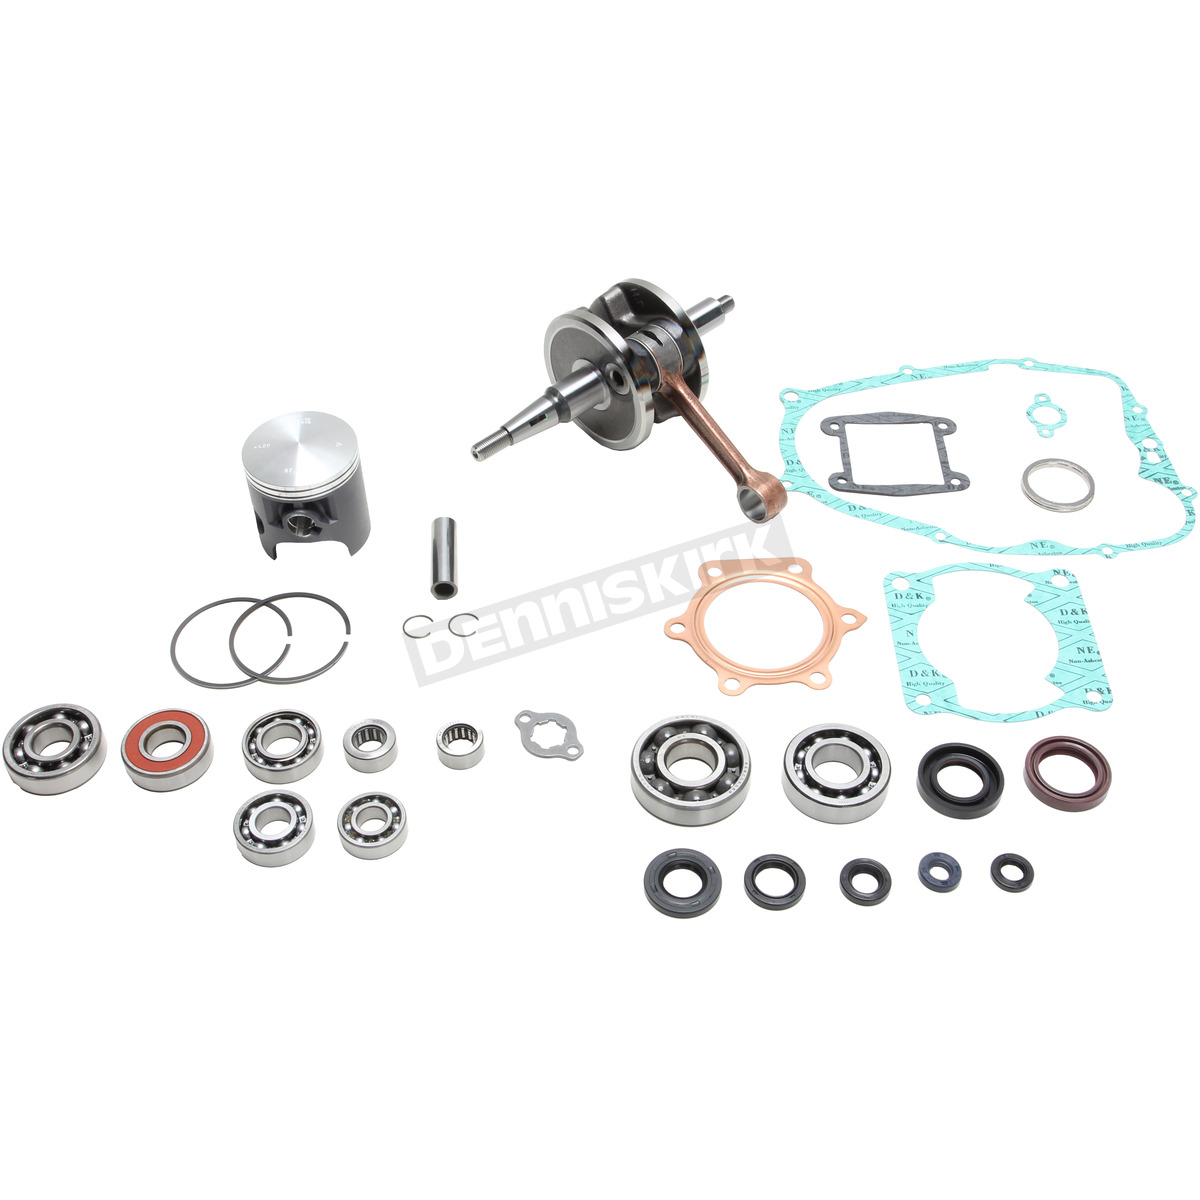 Wrench Rabbit Complete Engine Rebuild Kit In A Box 67 5mm